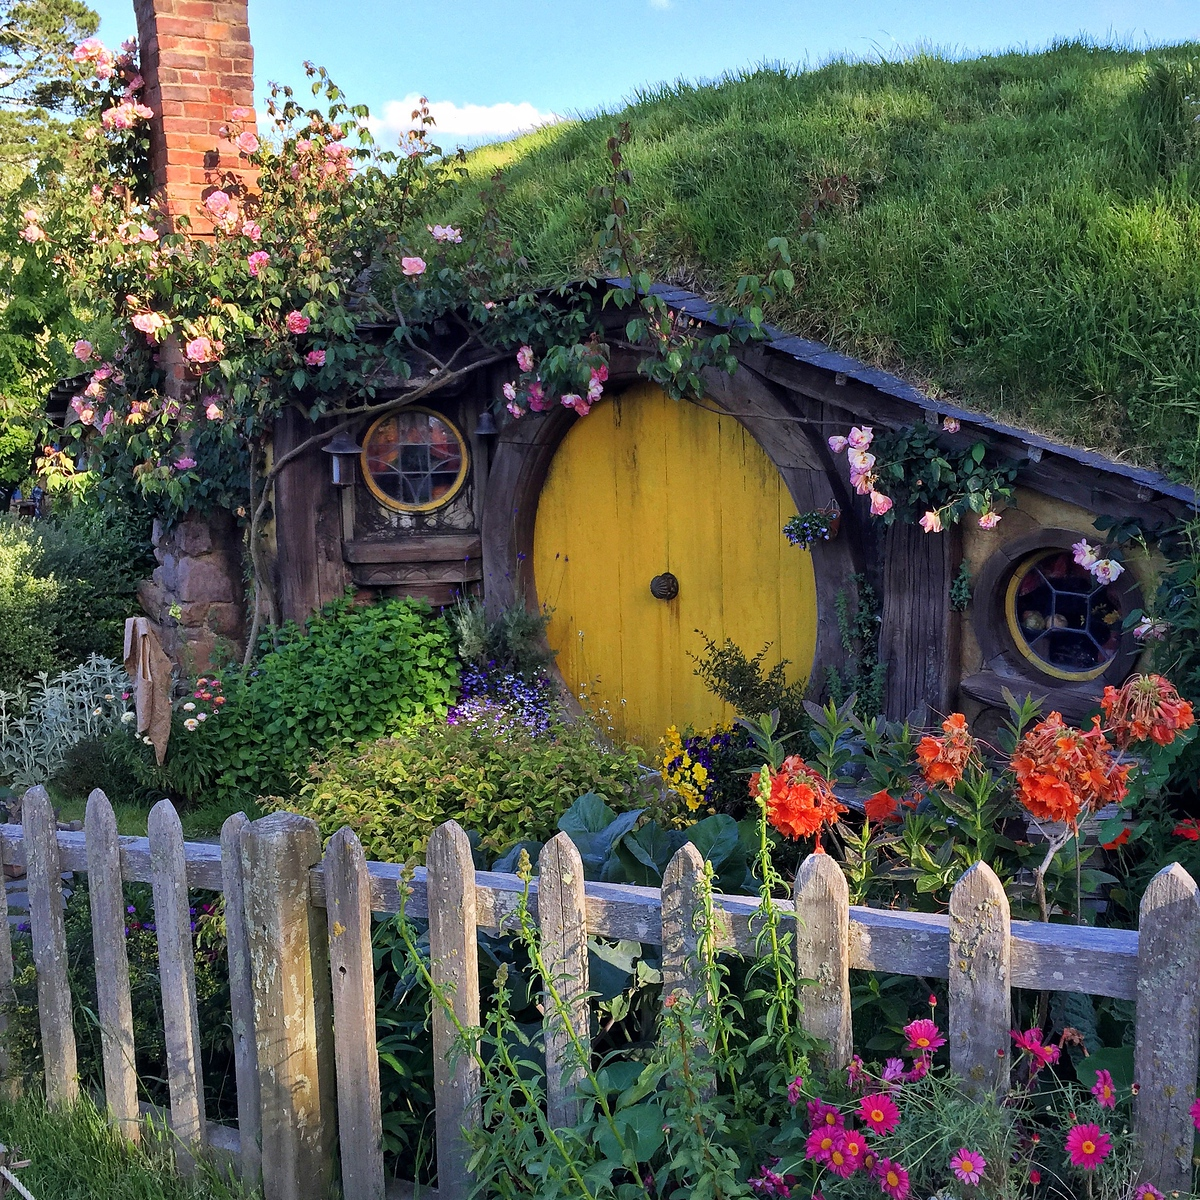 The home of Samwise and Rosie.